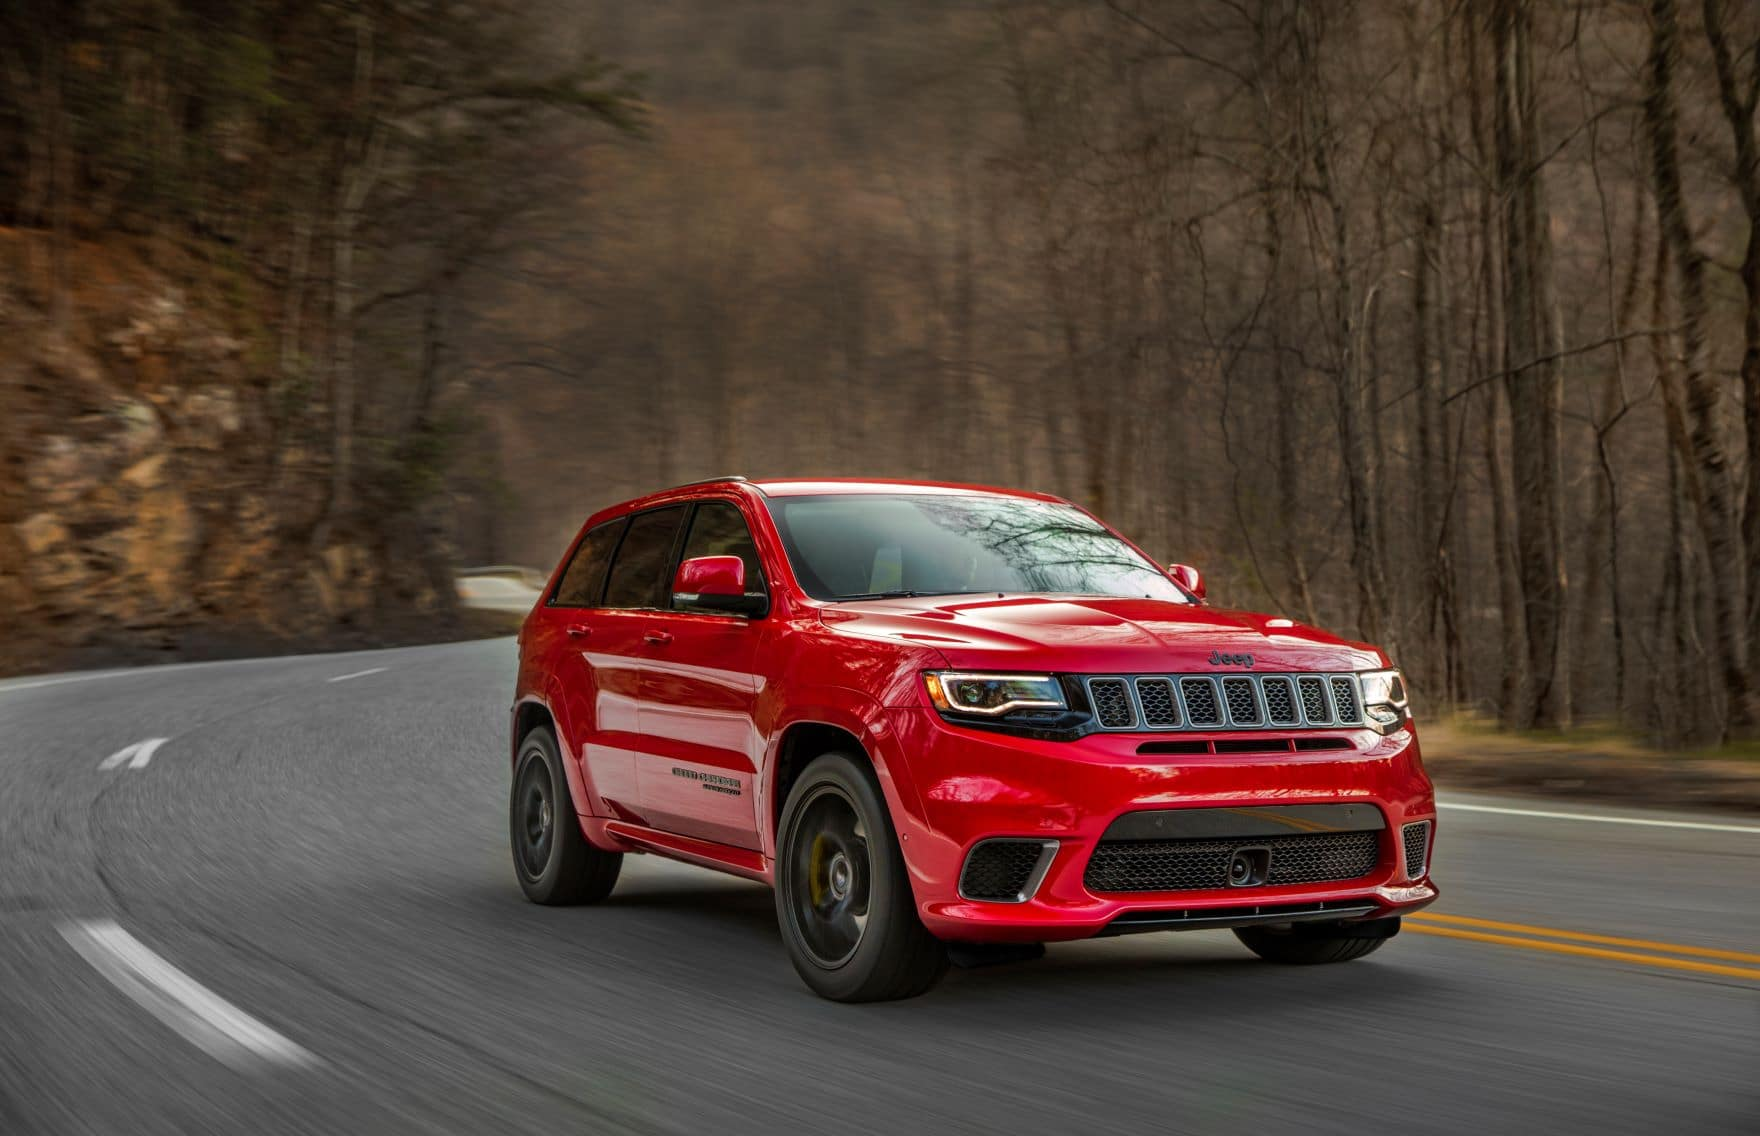 Jeep Grand Cherokee Towing Capacity. 2018 Grand Cherokee Red